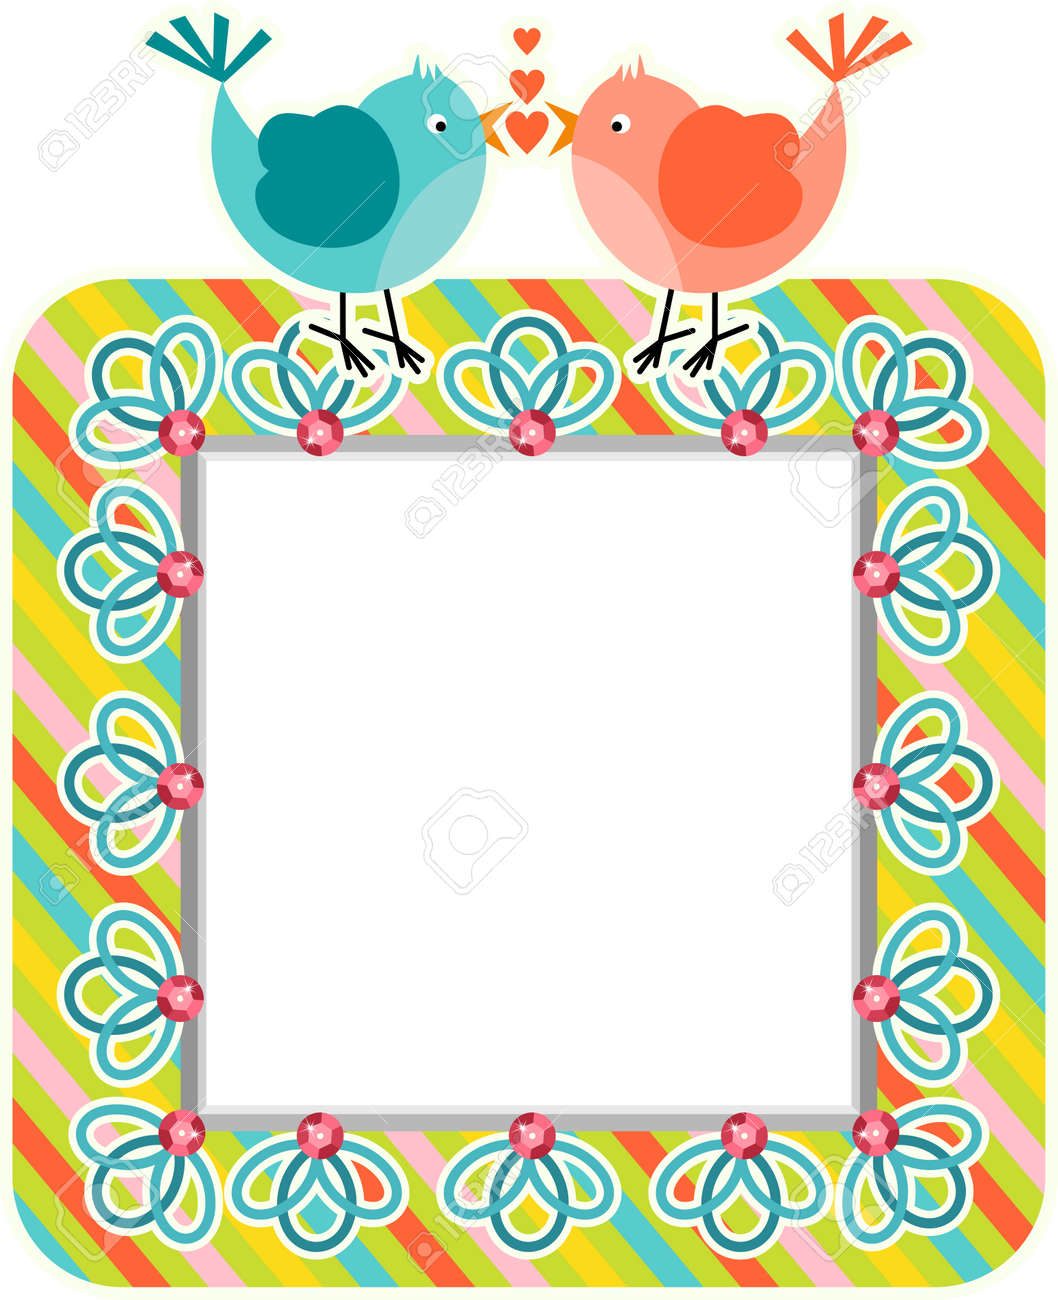 Couple Cute Love Birds Frame Royalty Free Cliparts, Vectors, And ...